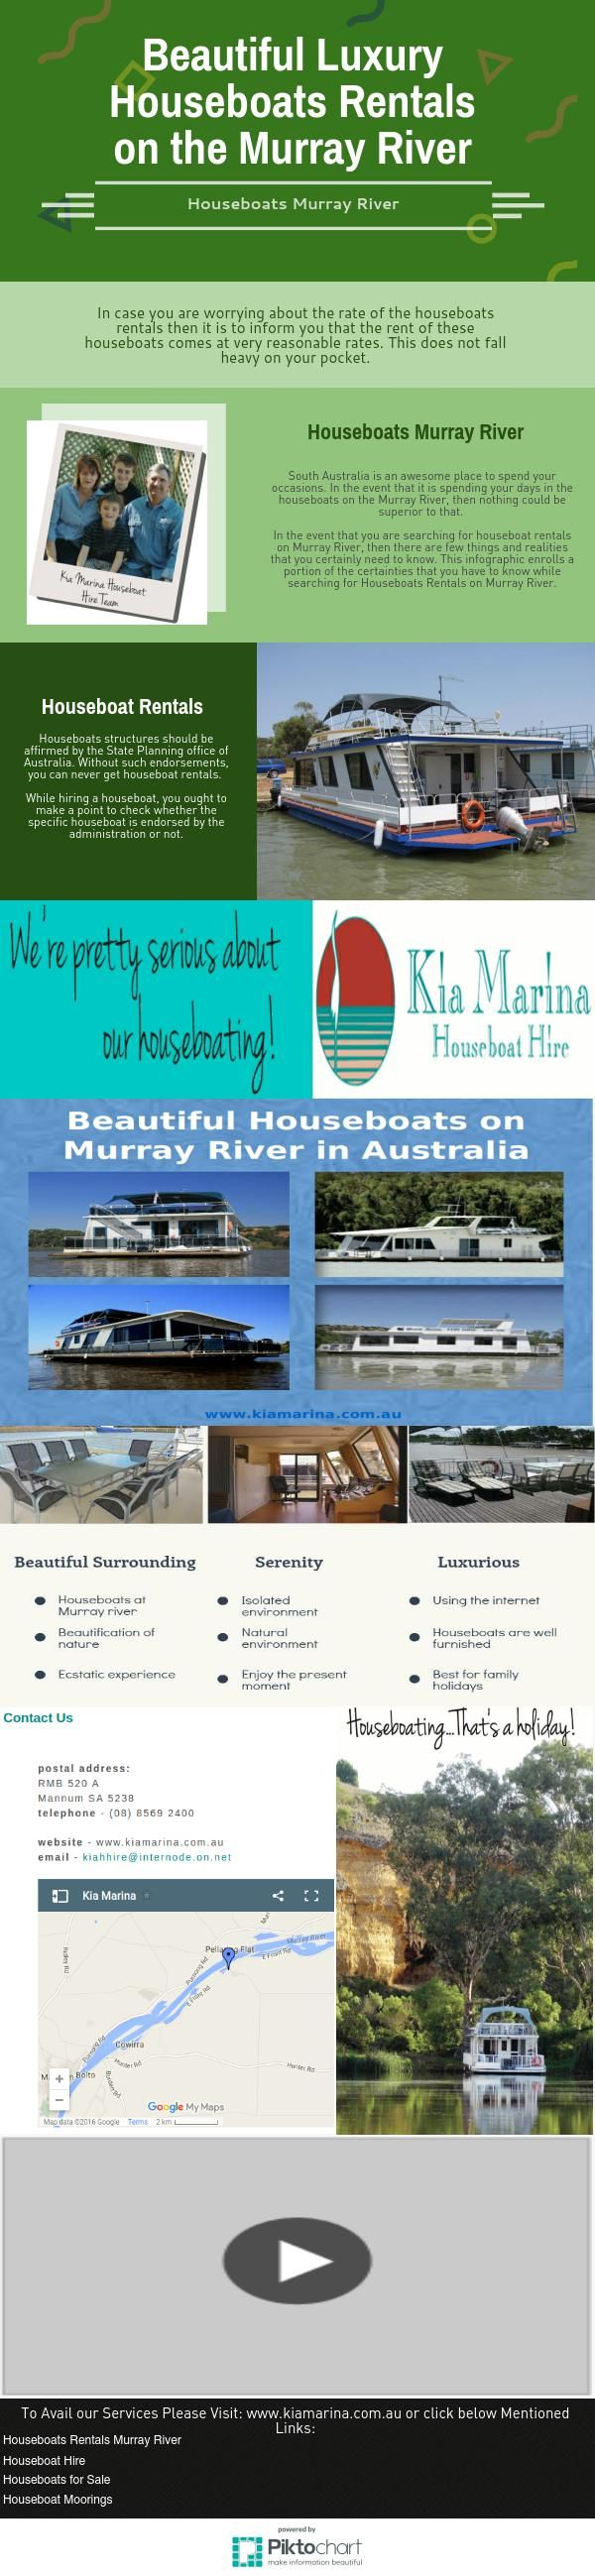 Beautiful Luxury Houseboats Rentals on the Murray River. For more please visit: www.kiamarina.com.au